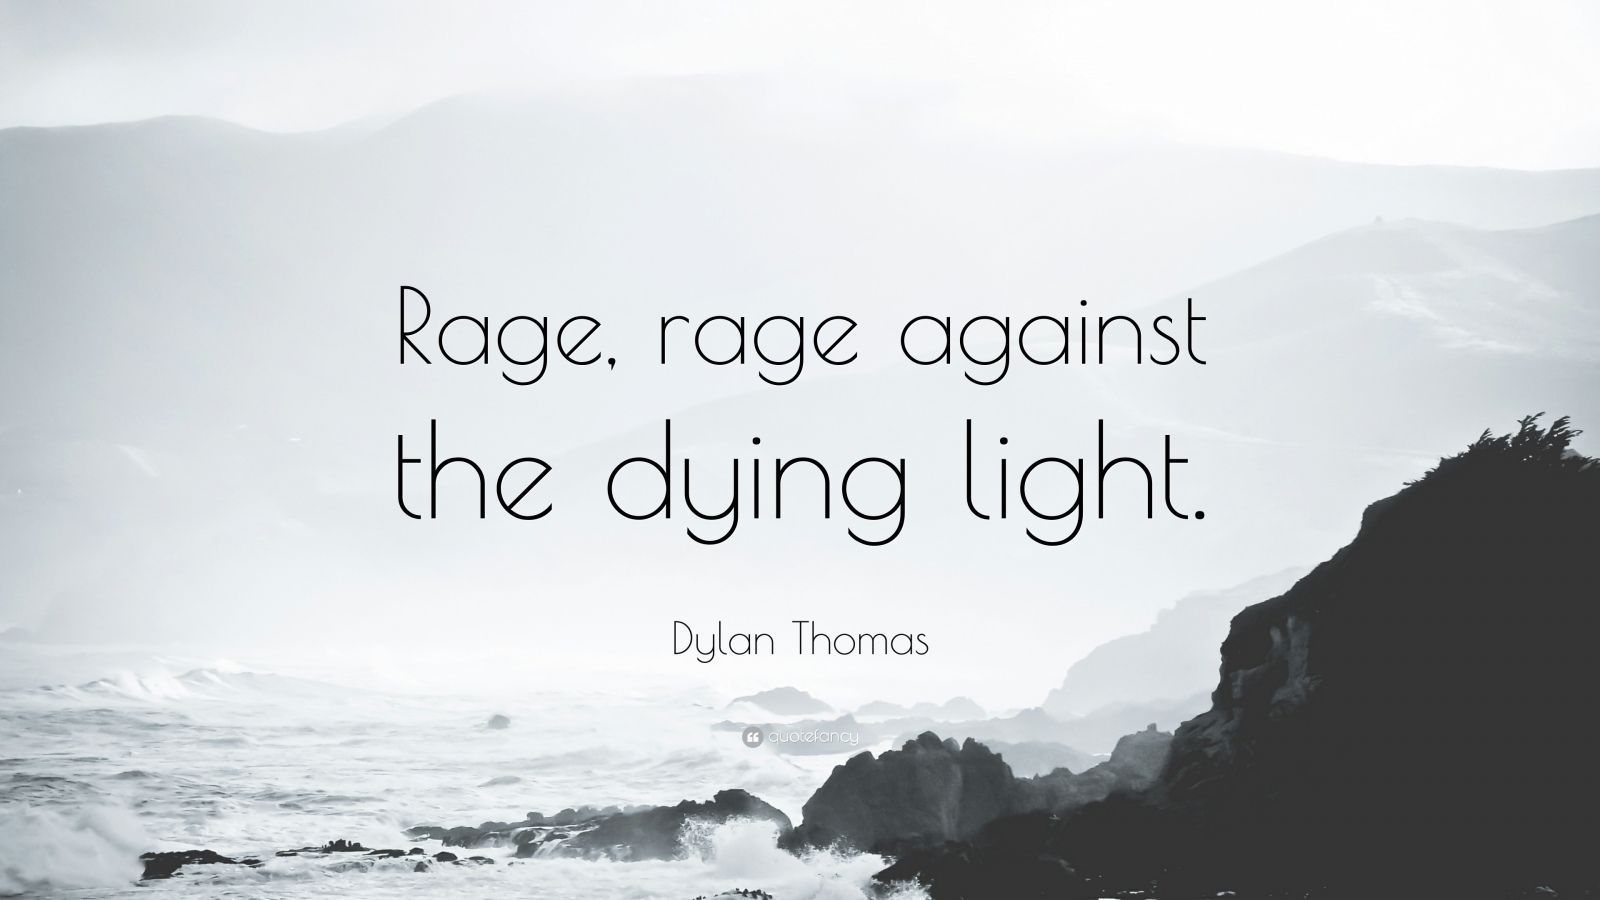 Best Wallpaper Marble Bible Verse - 244042-Dylan-Thomas-Quote-Rage-rage-against-the-dying-light  Gallery_511434.jpg